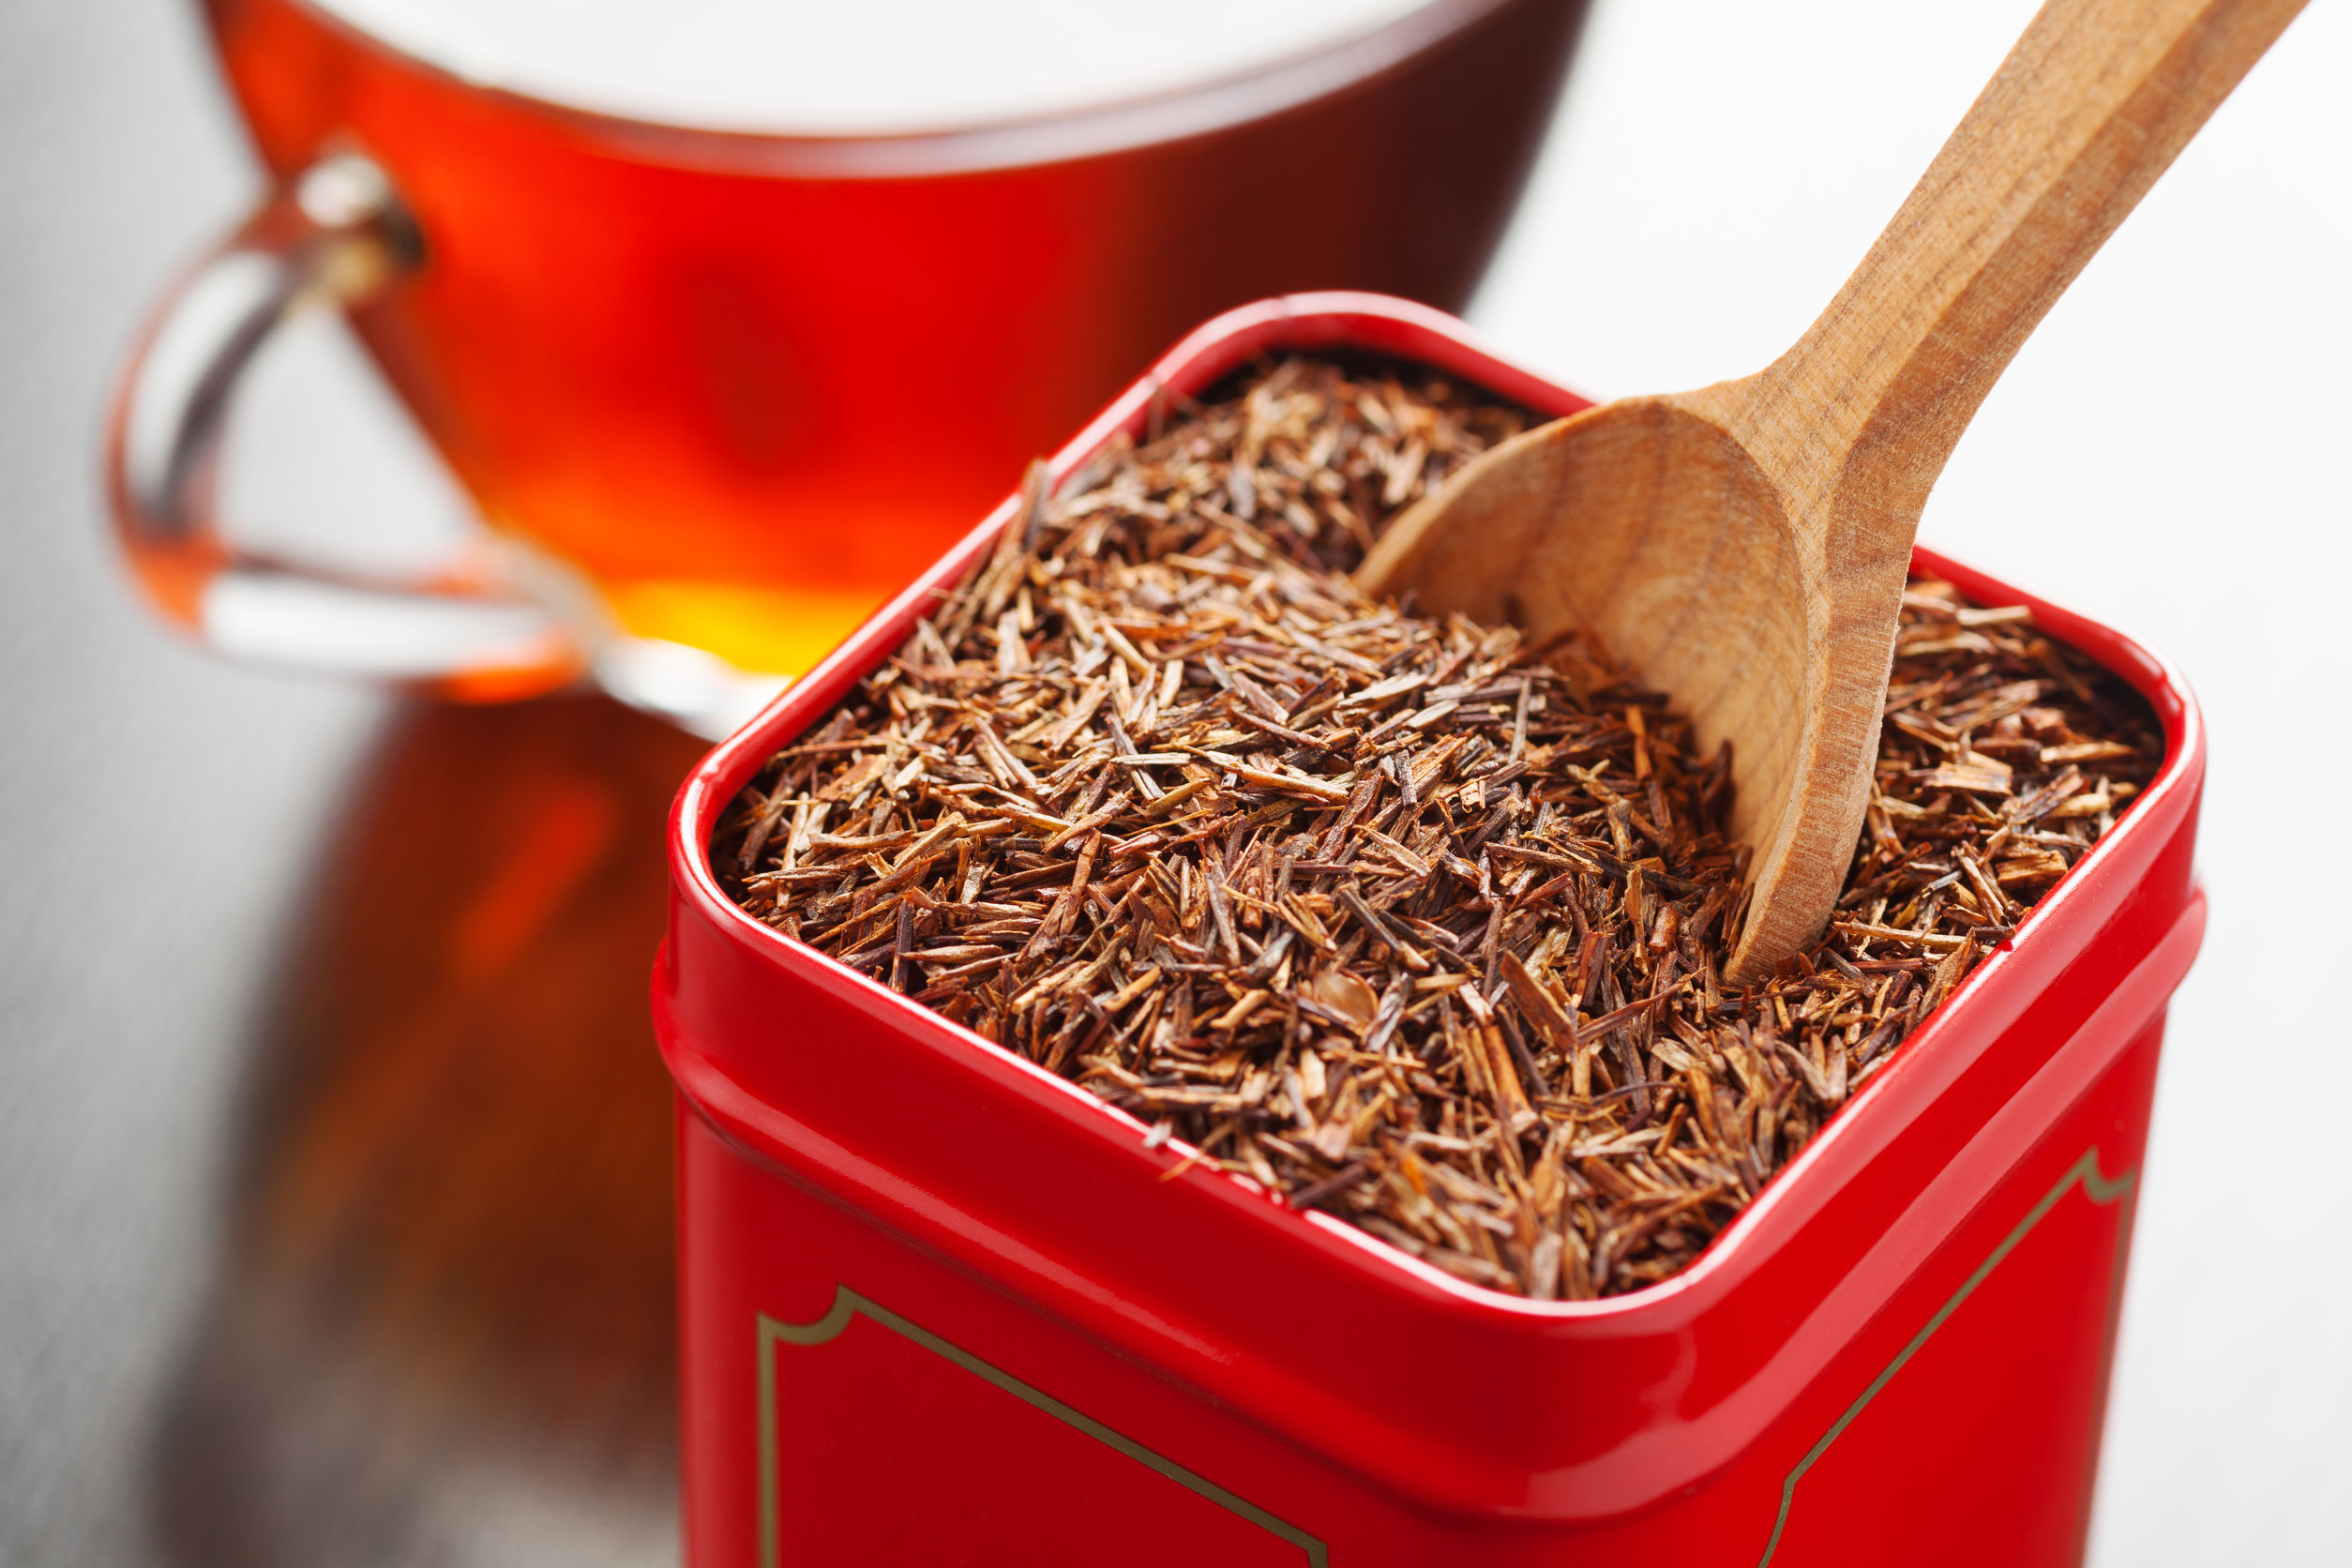 loose rooibos in red container